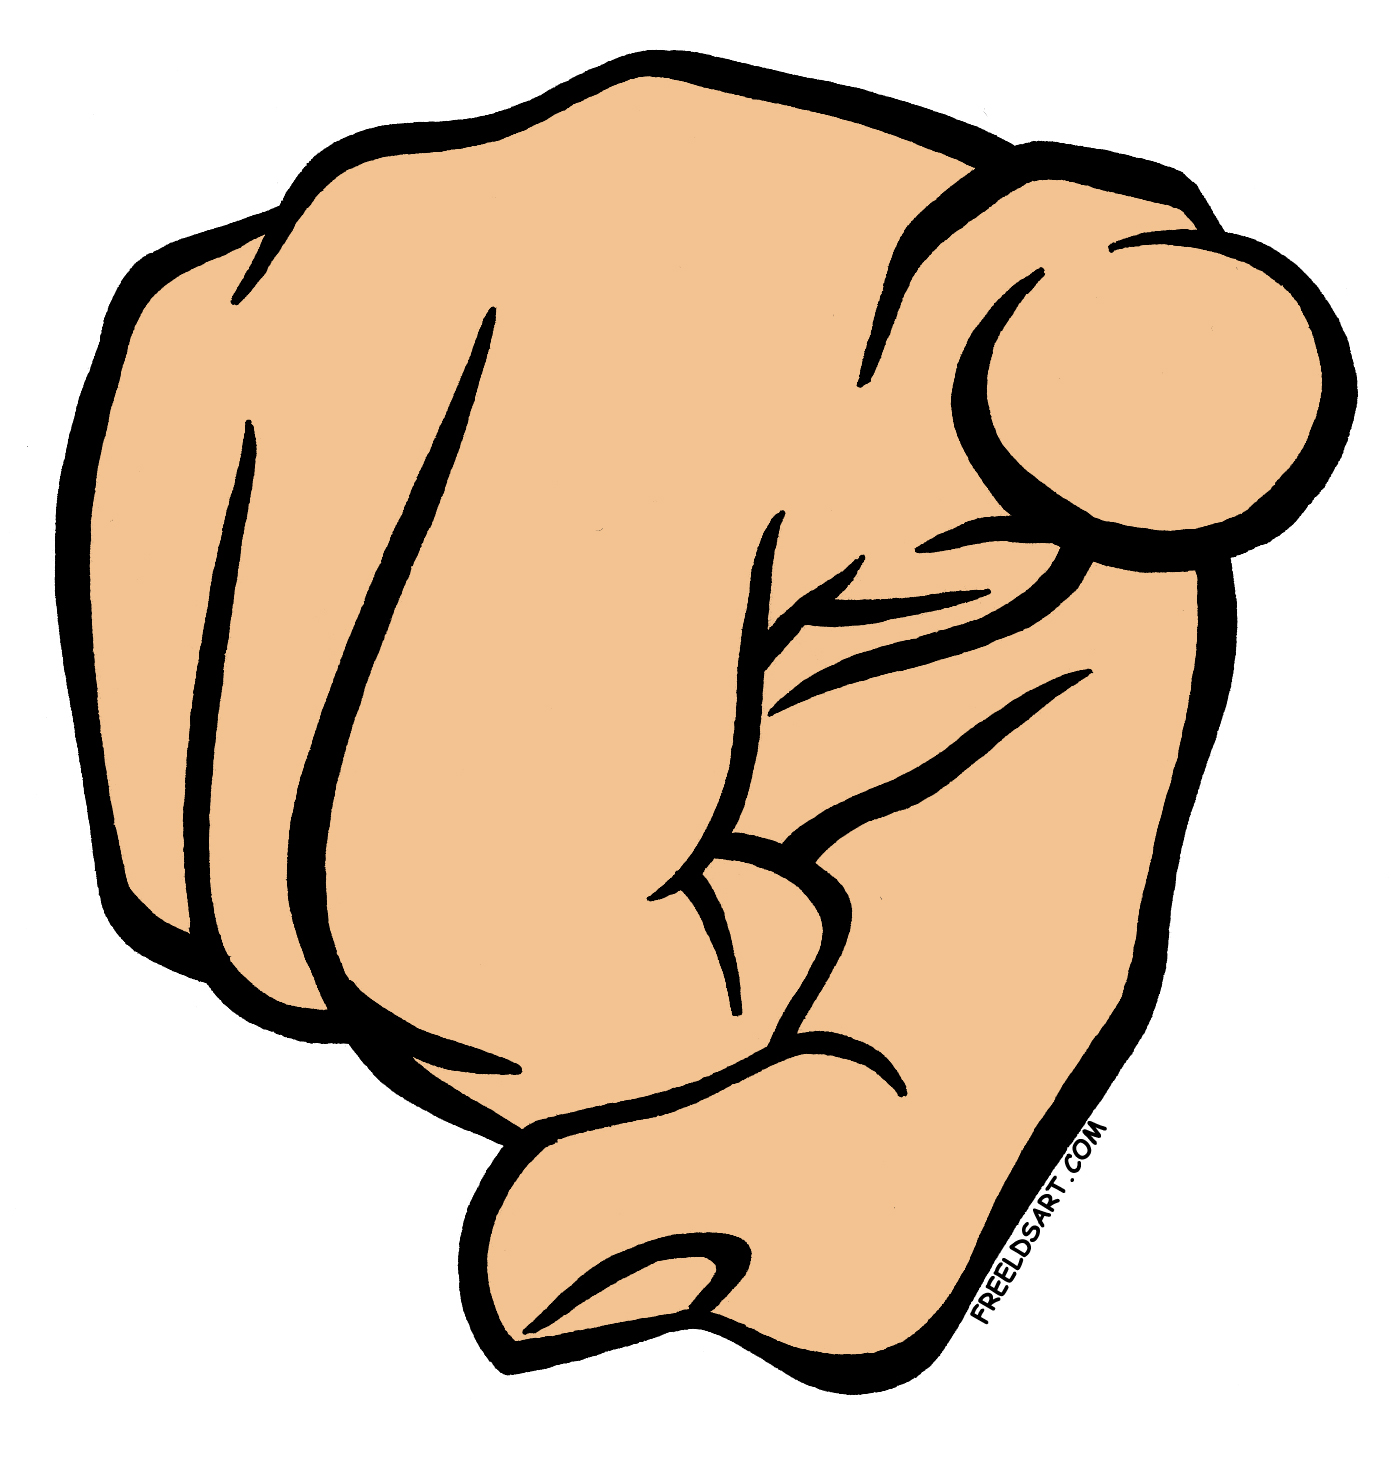 Me Pointing Finger Clipart